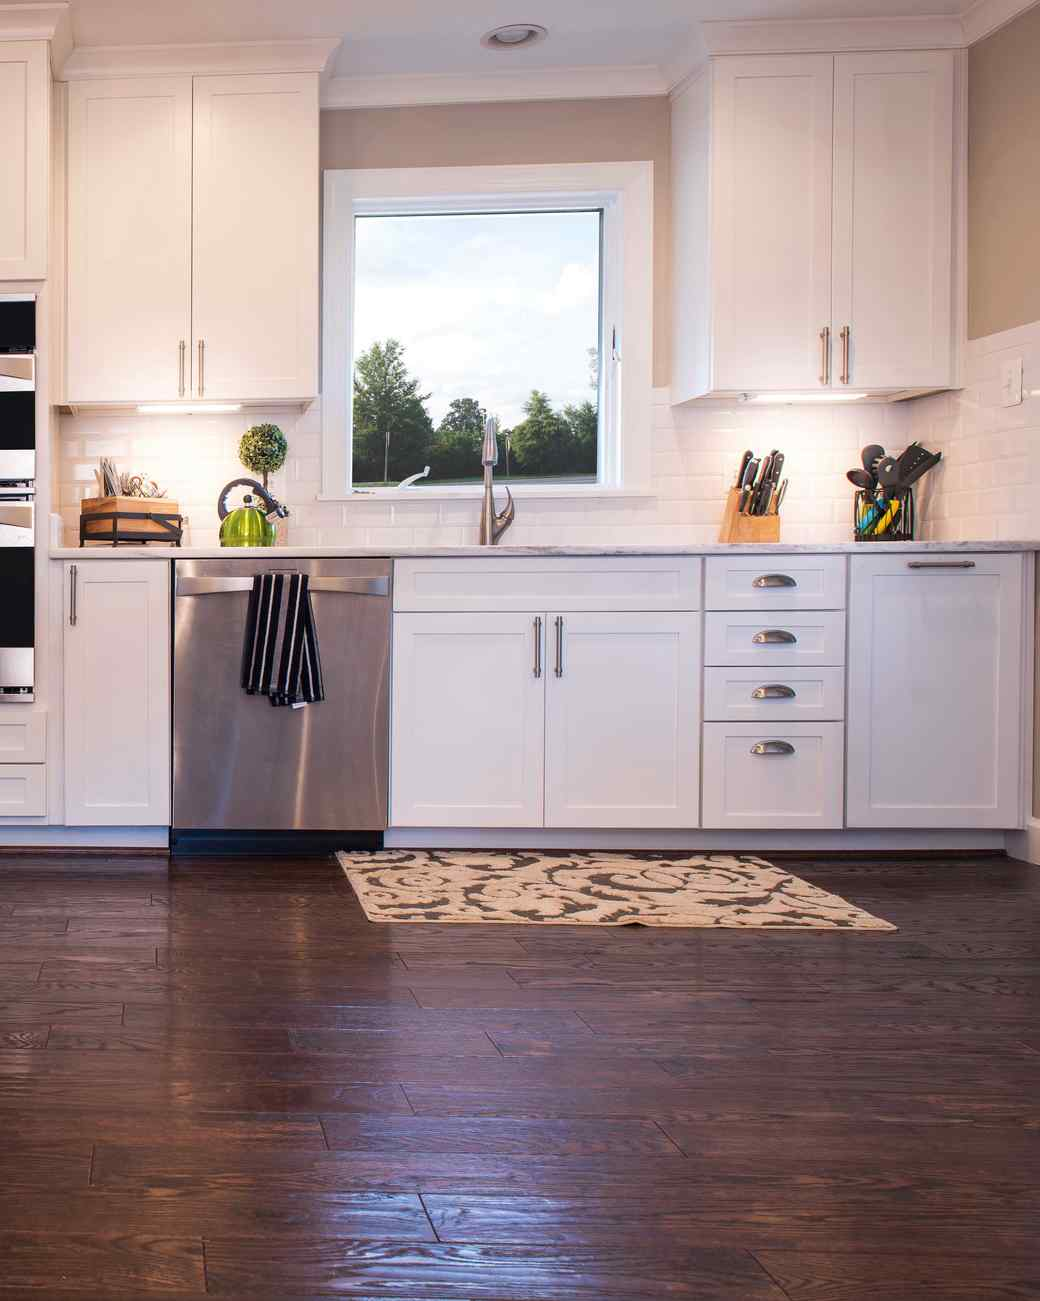 Kitchen Wood Furniture How To Care For Wood Furniture And Wood Floors Marthastewartcom